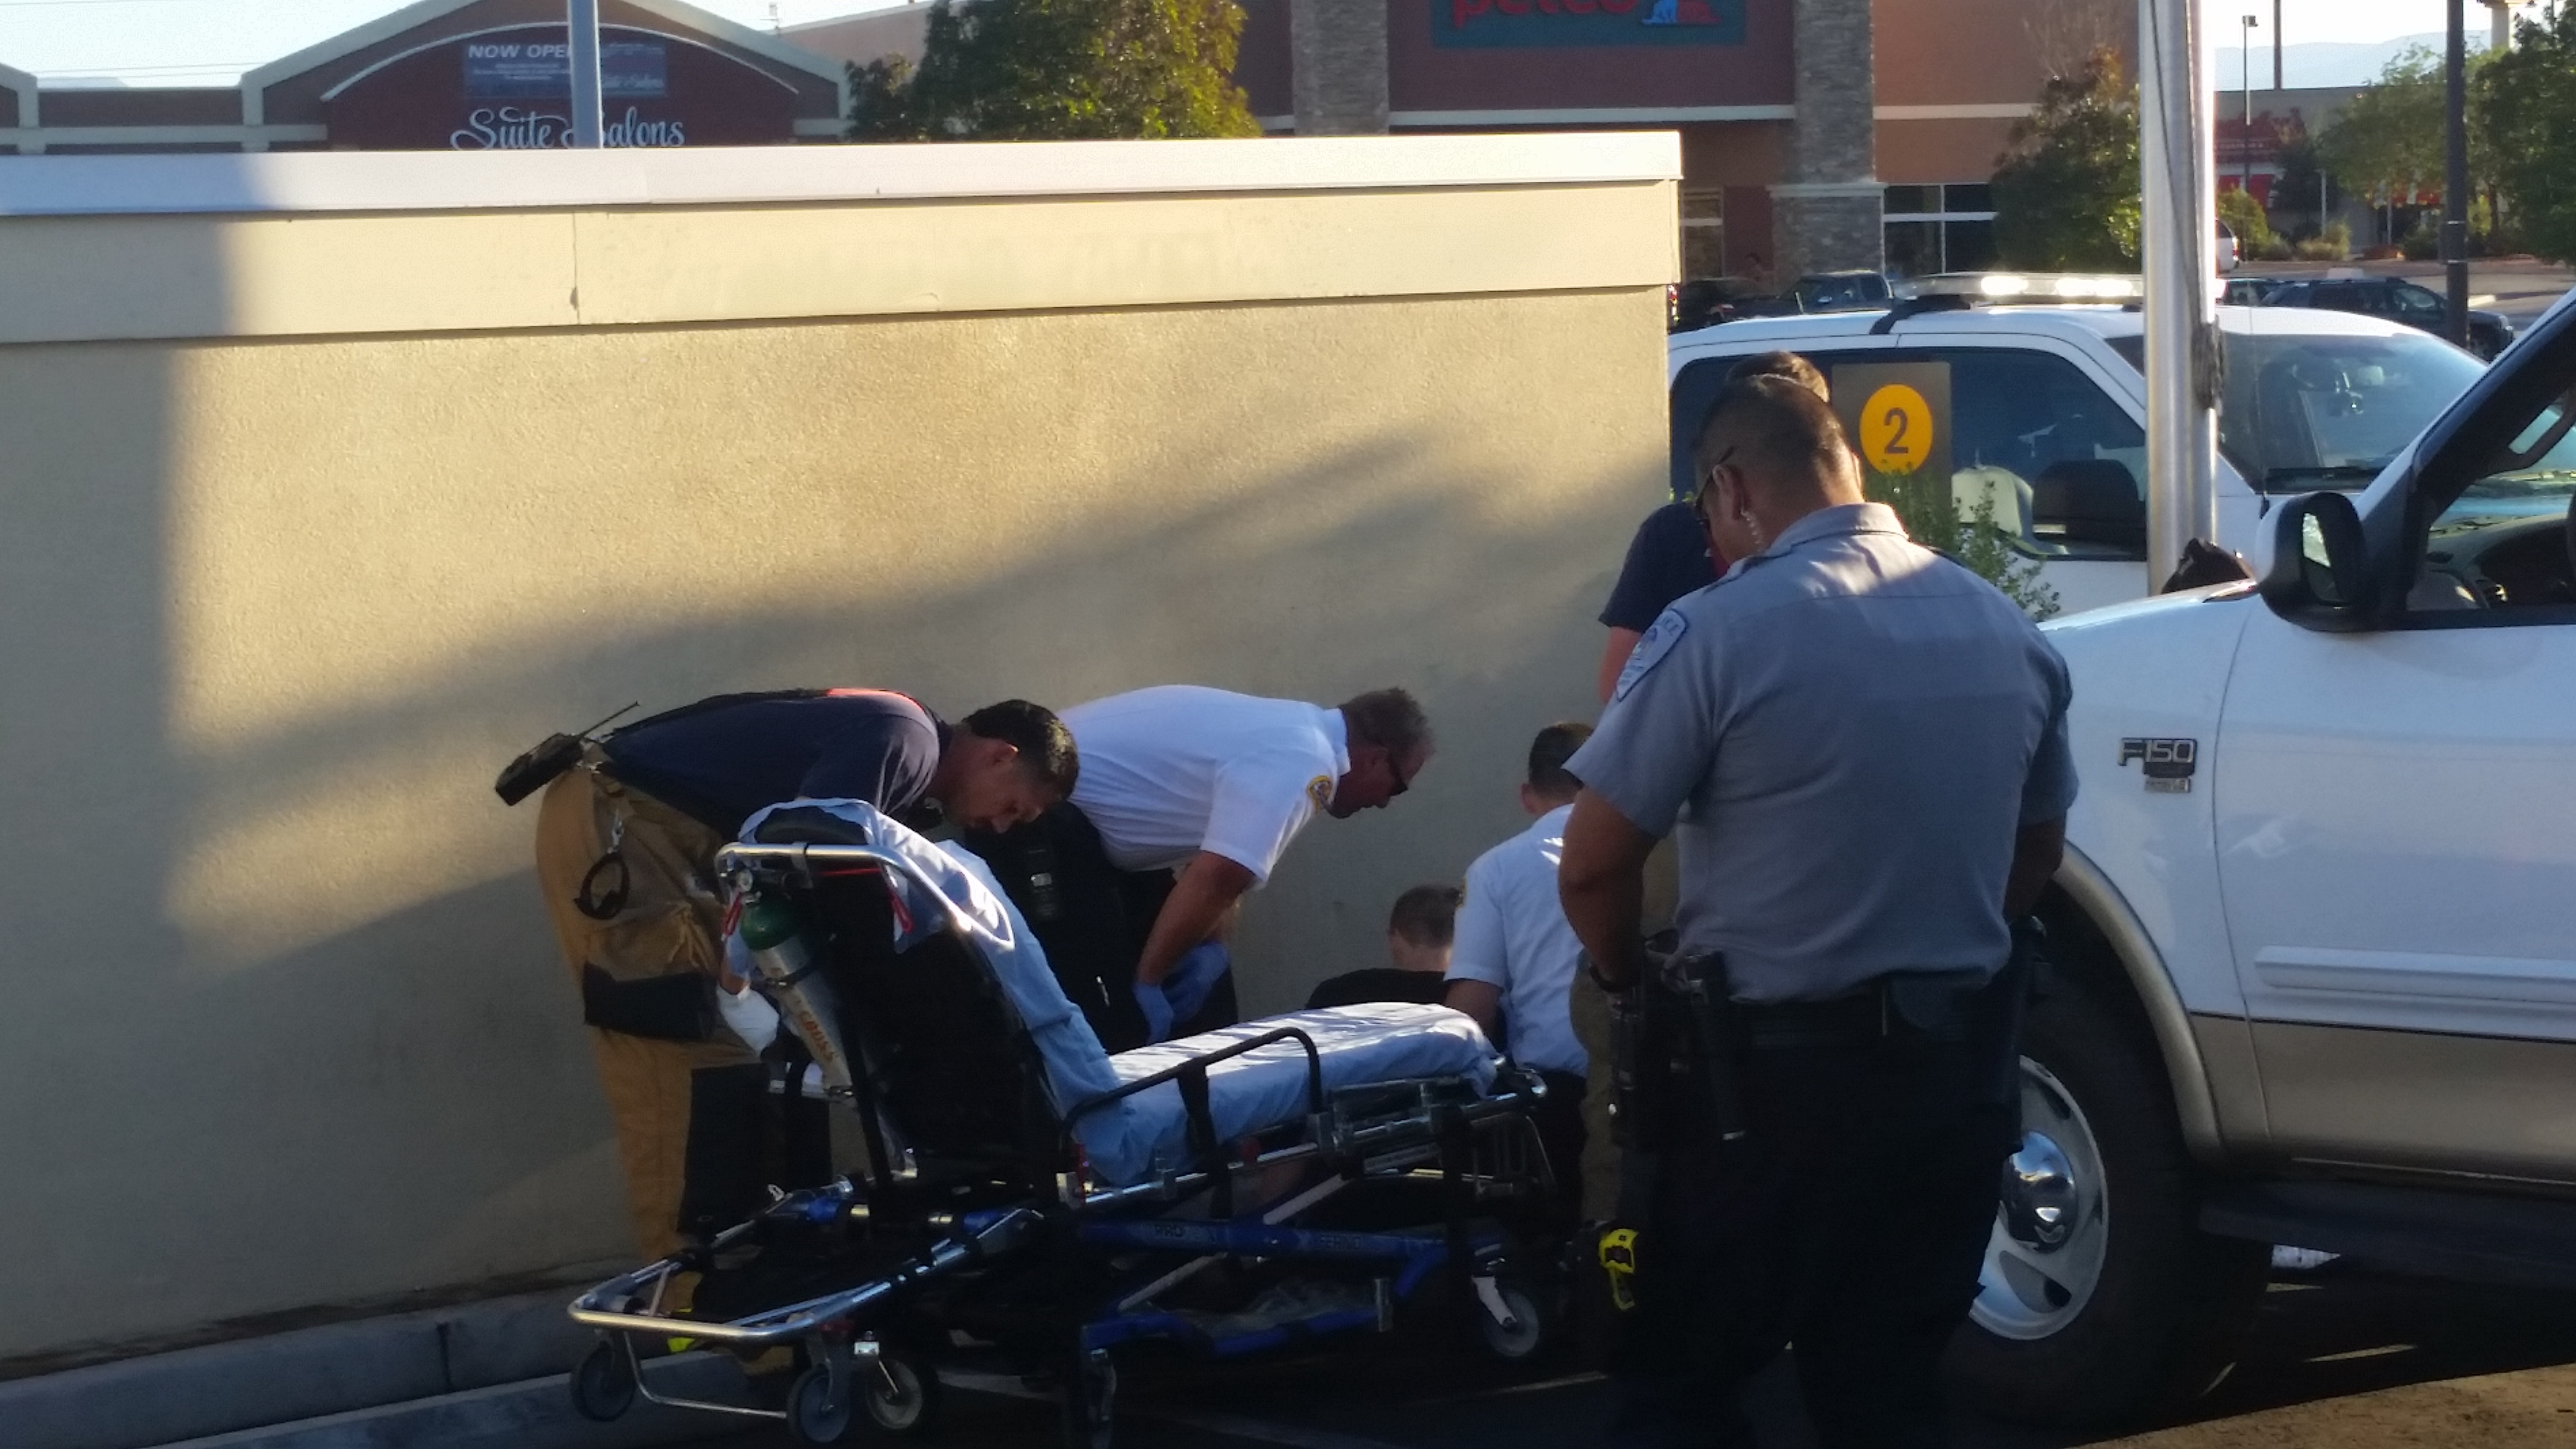 Police and emergency crews respond when a man becomes pinned against wall after reportedly attempting to push his truck, Washington City, Utah, Sept. 26, 2016 | Photo by Brett Barrett, St. George News